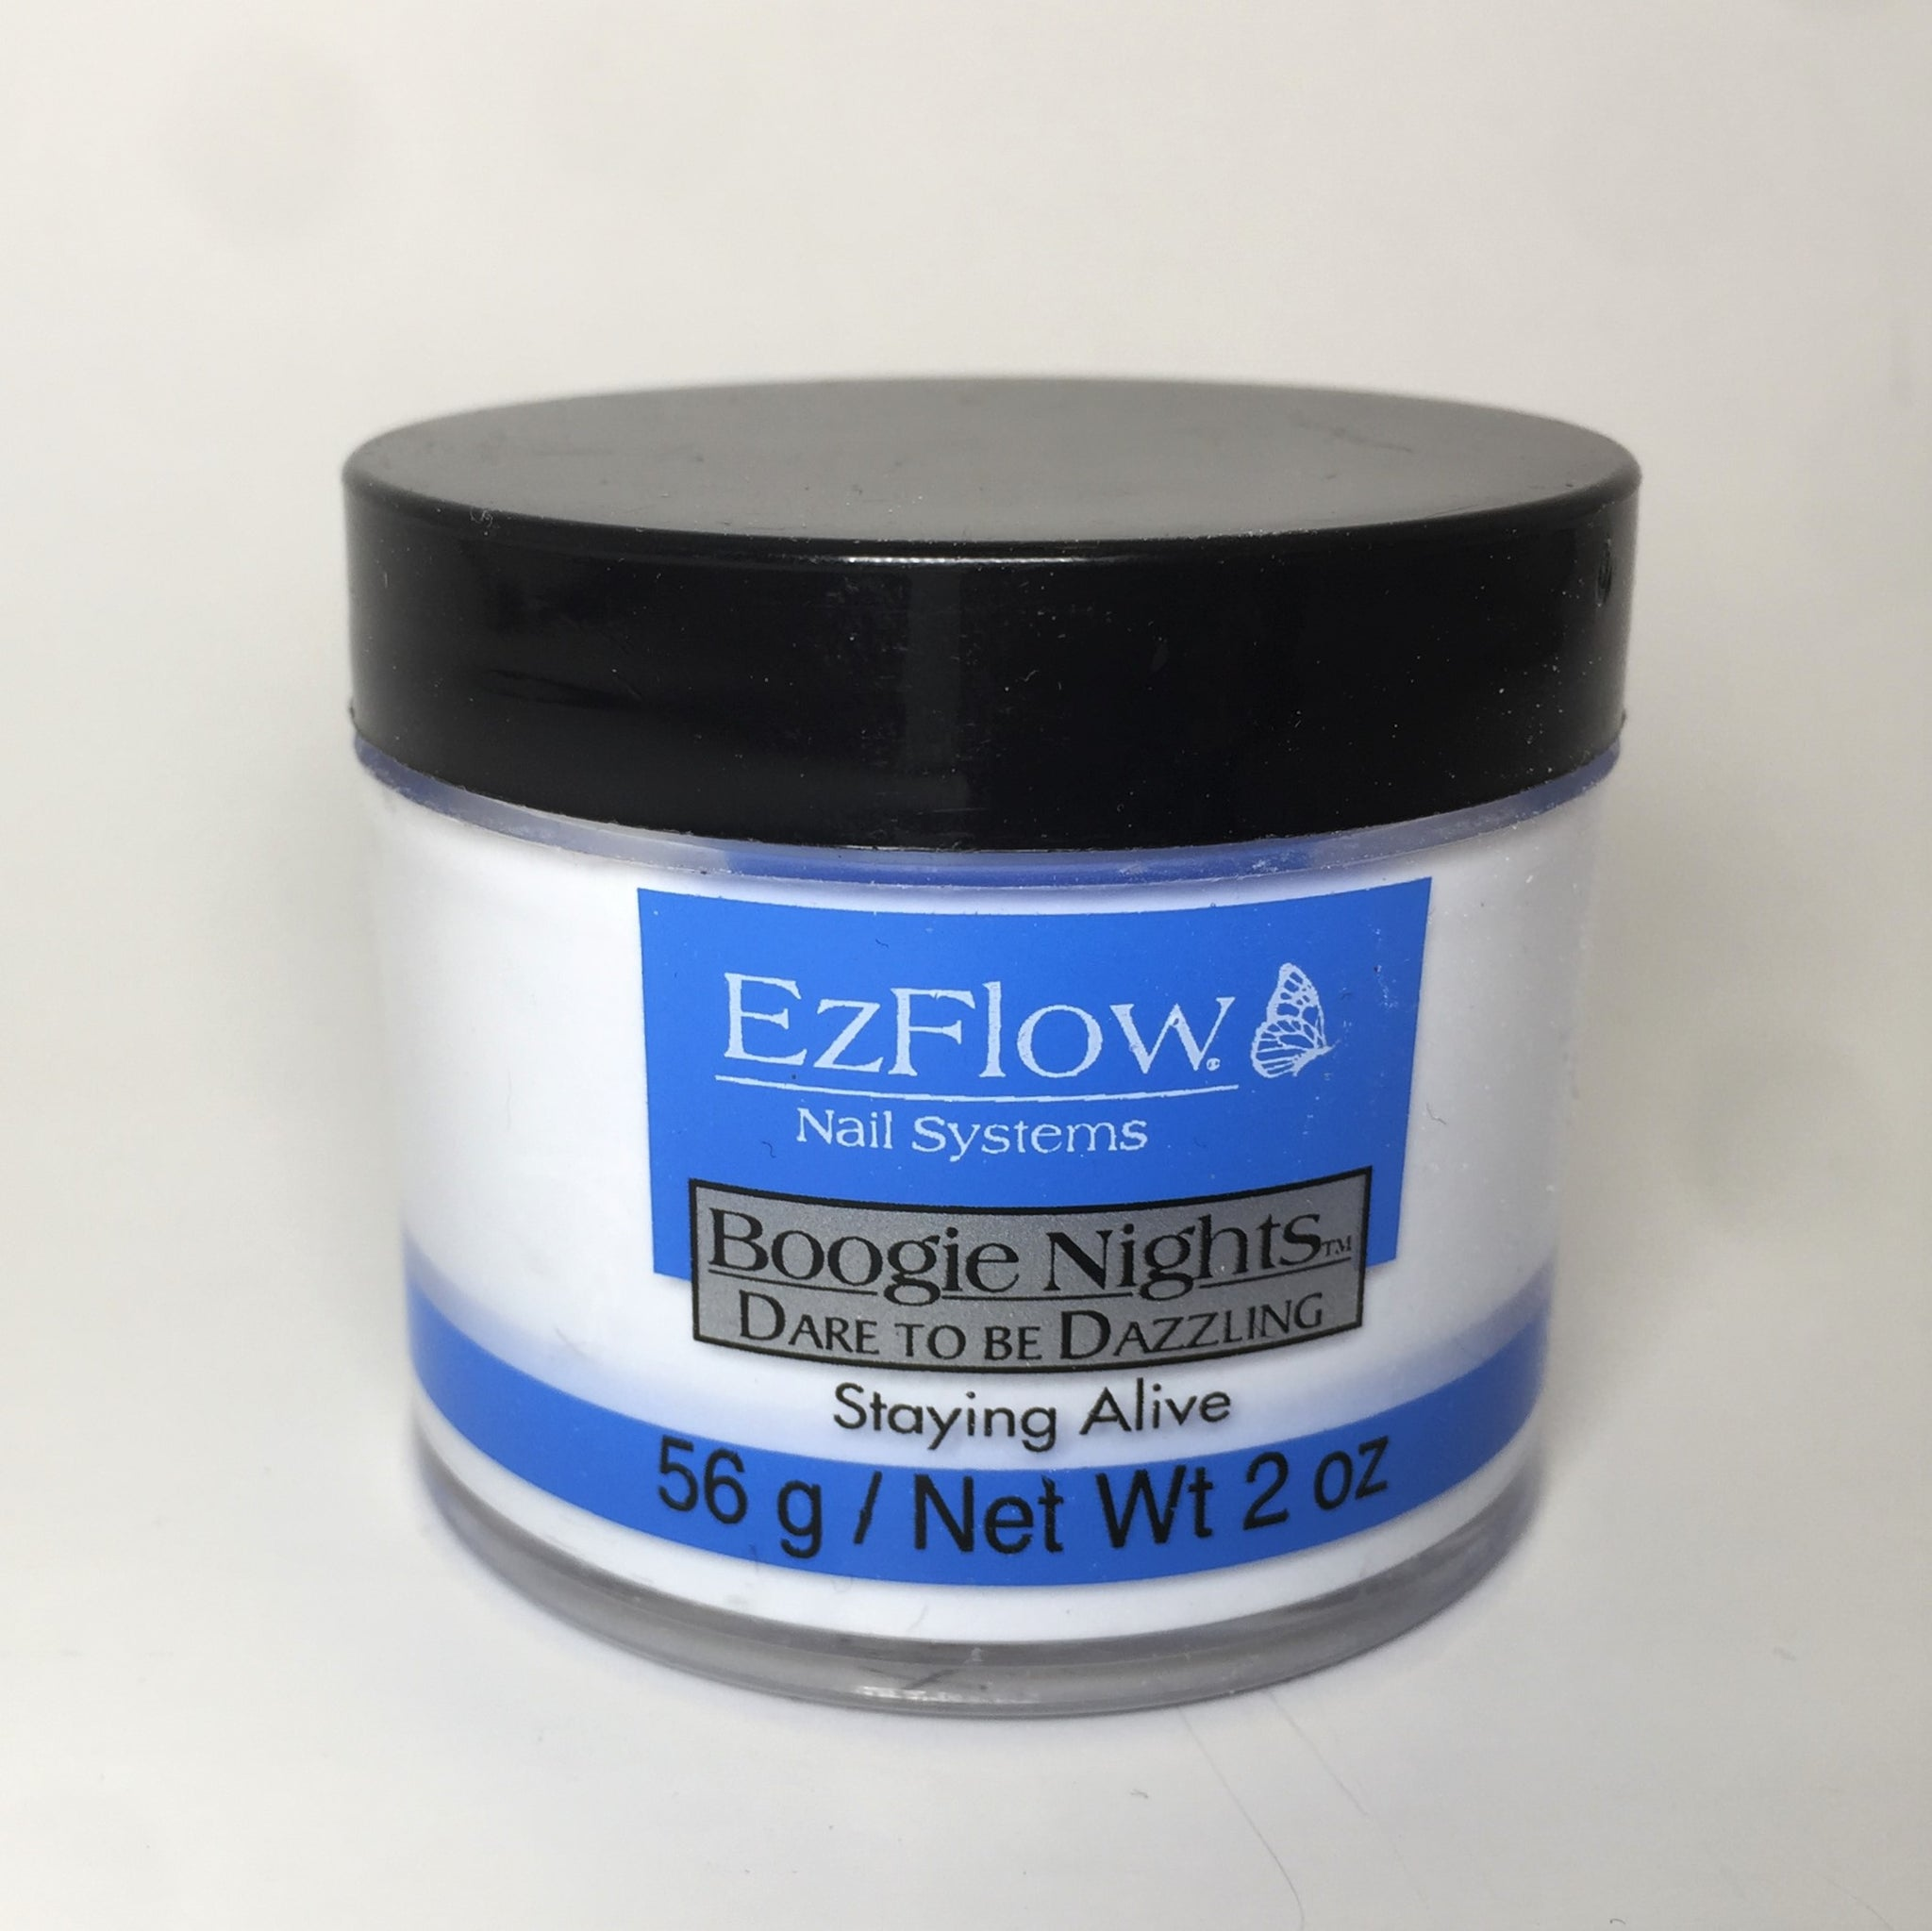 EZ Flow Boogie Nights Dare to Be Dazzling Collection